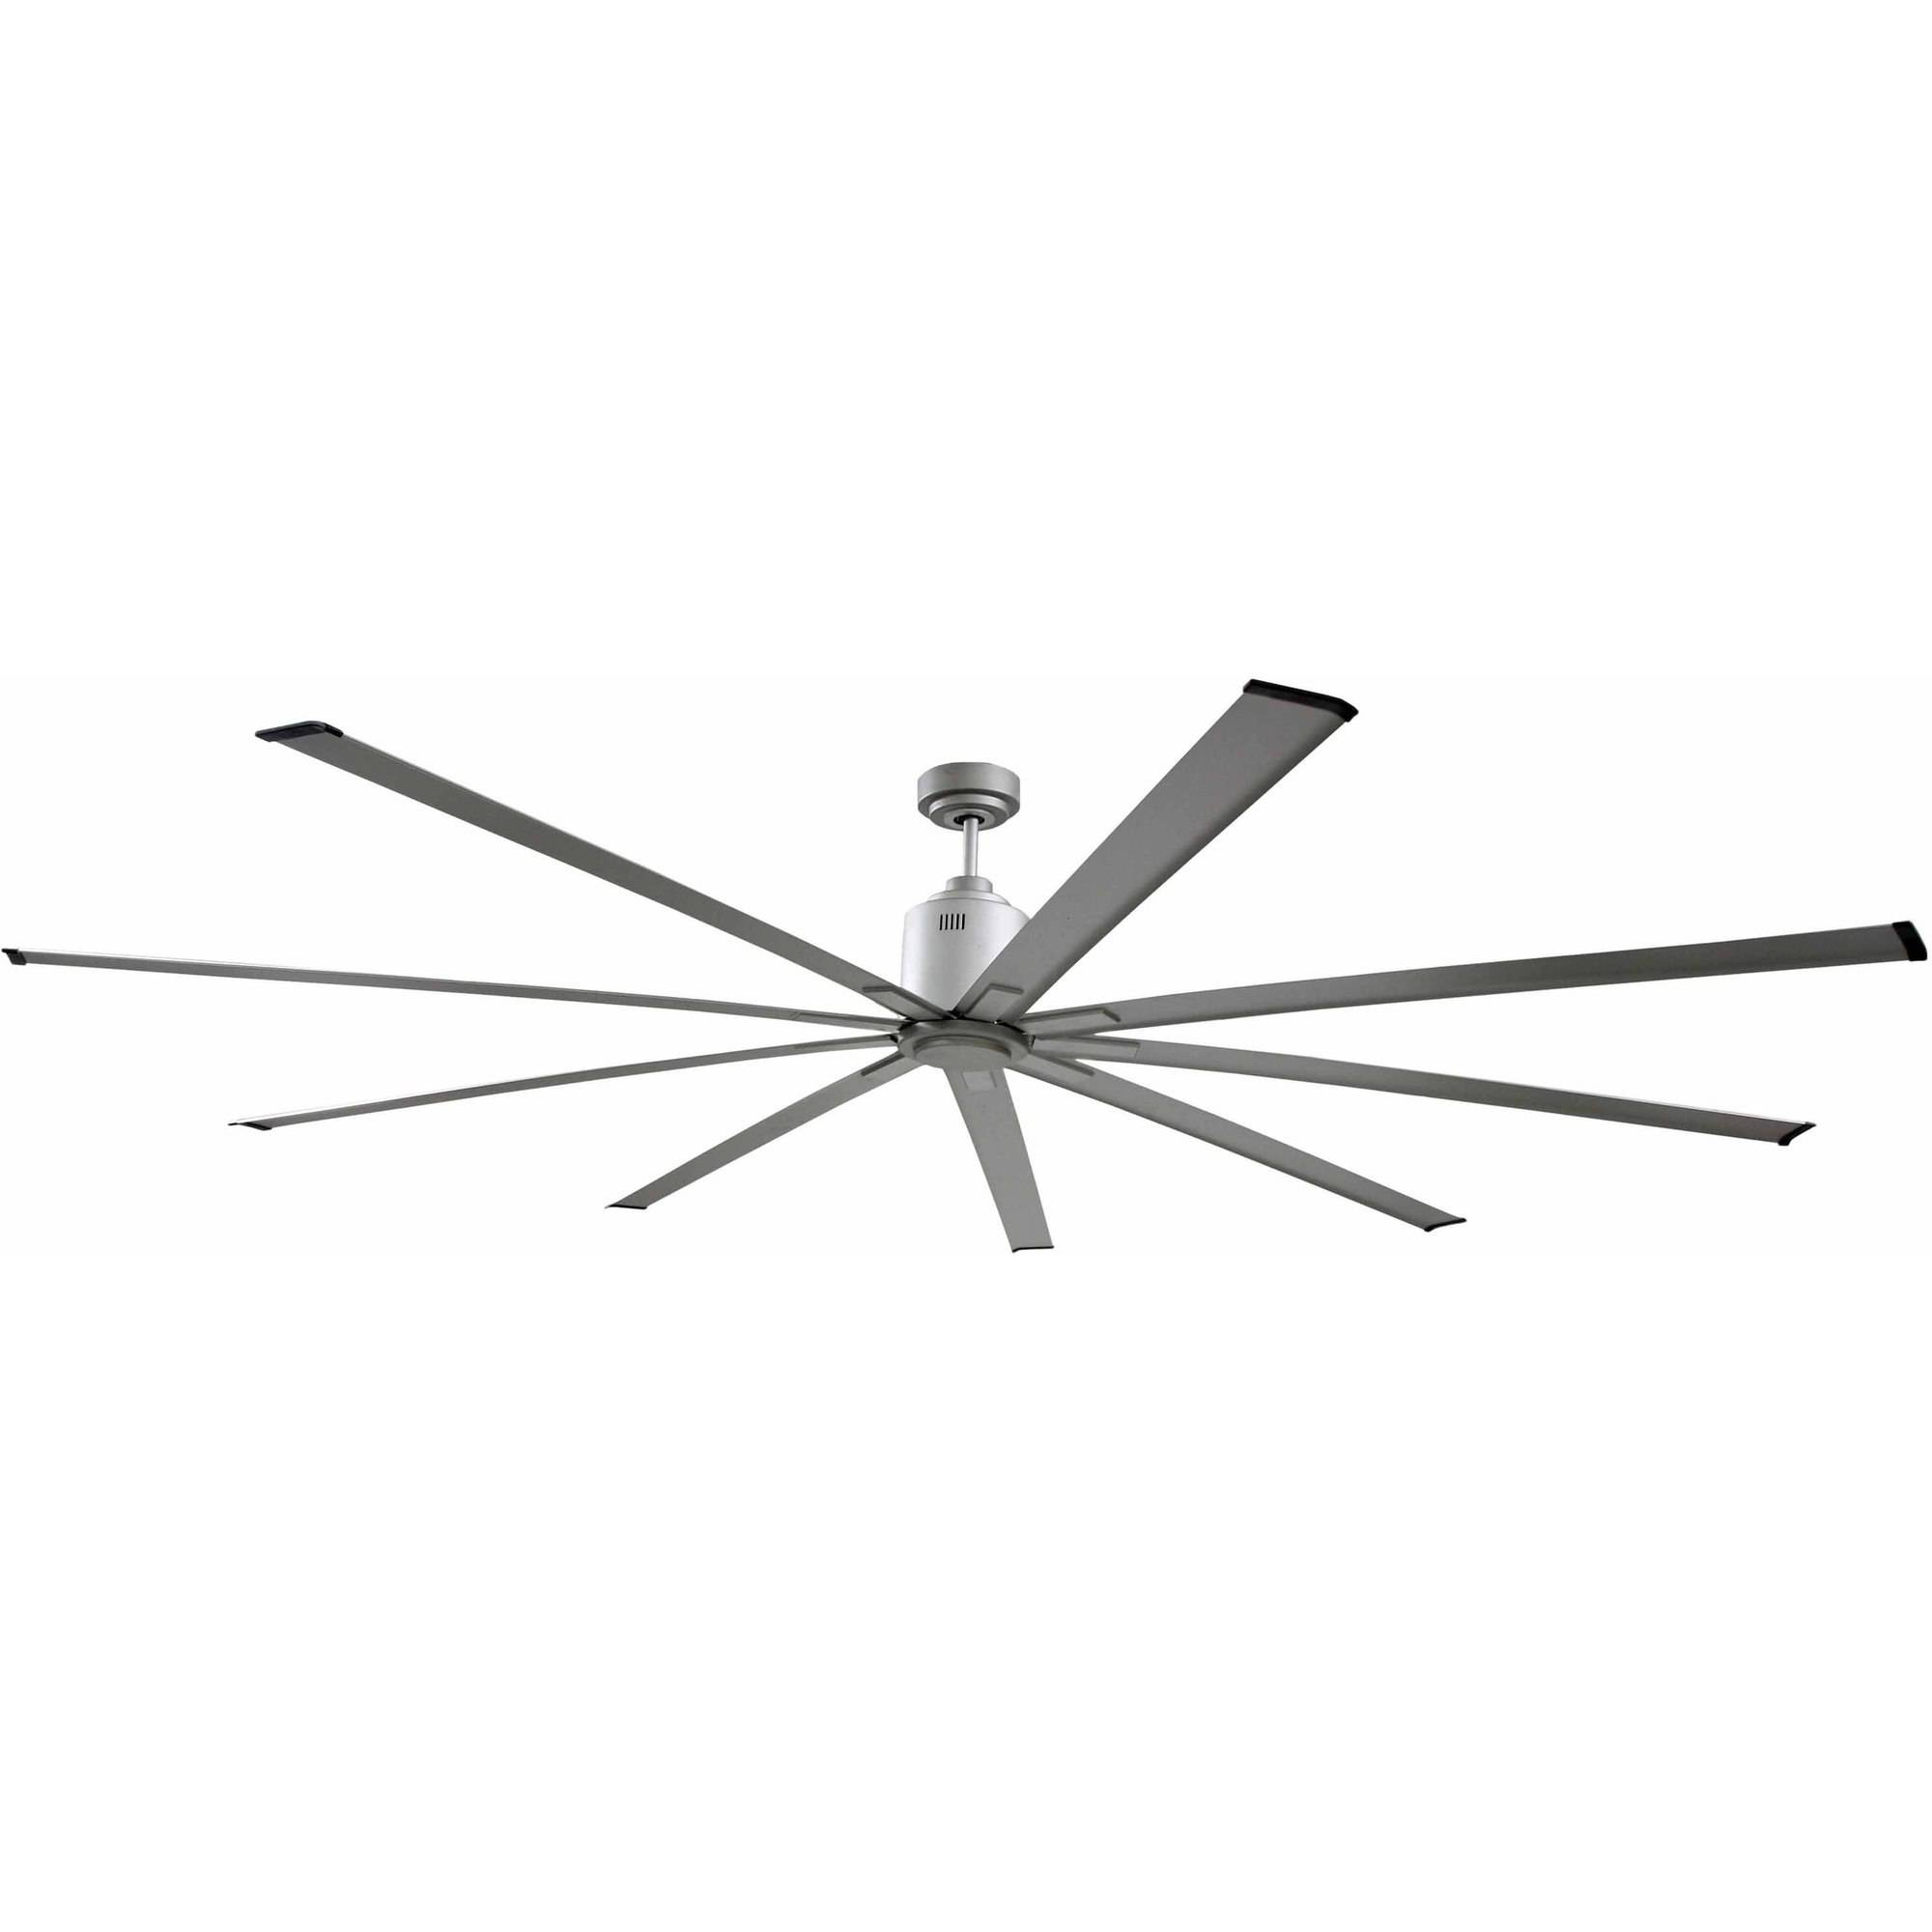 "Big Air 96"" 6-Speed Industrial Ceiling Fan in Brushed Nickel by Ventamatic, Ltd."